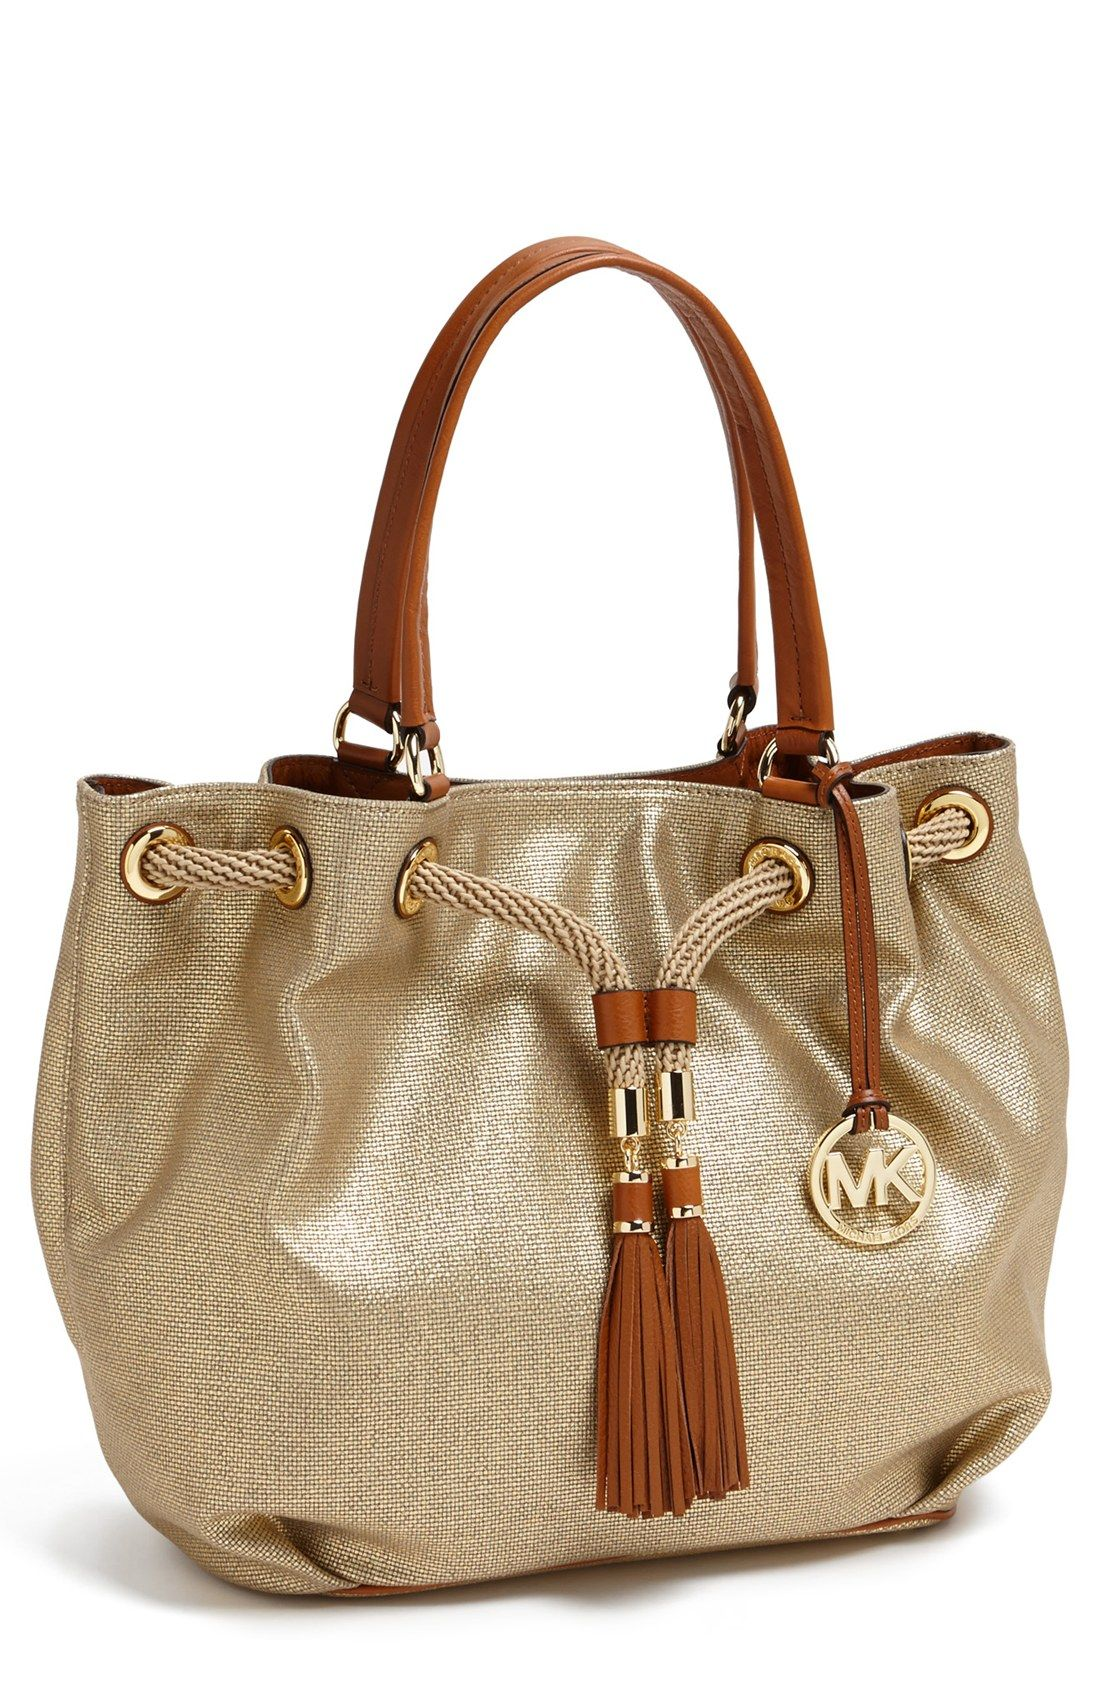 adcc1f756359 Loving this Michael Kors nautical inspired tote with tasseled-rope  drawstrings.